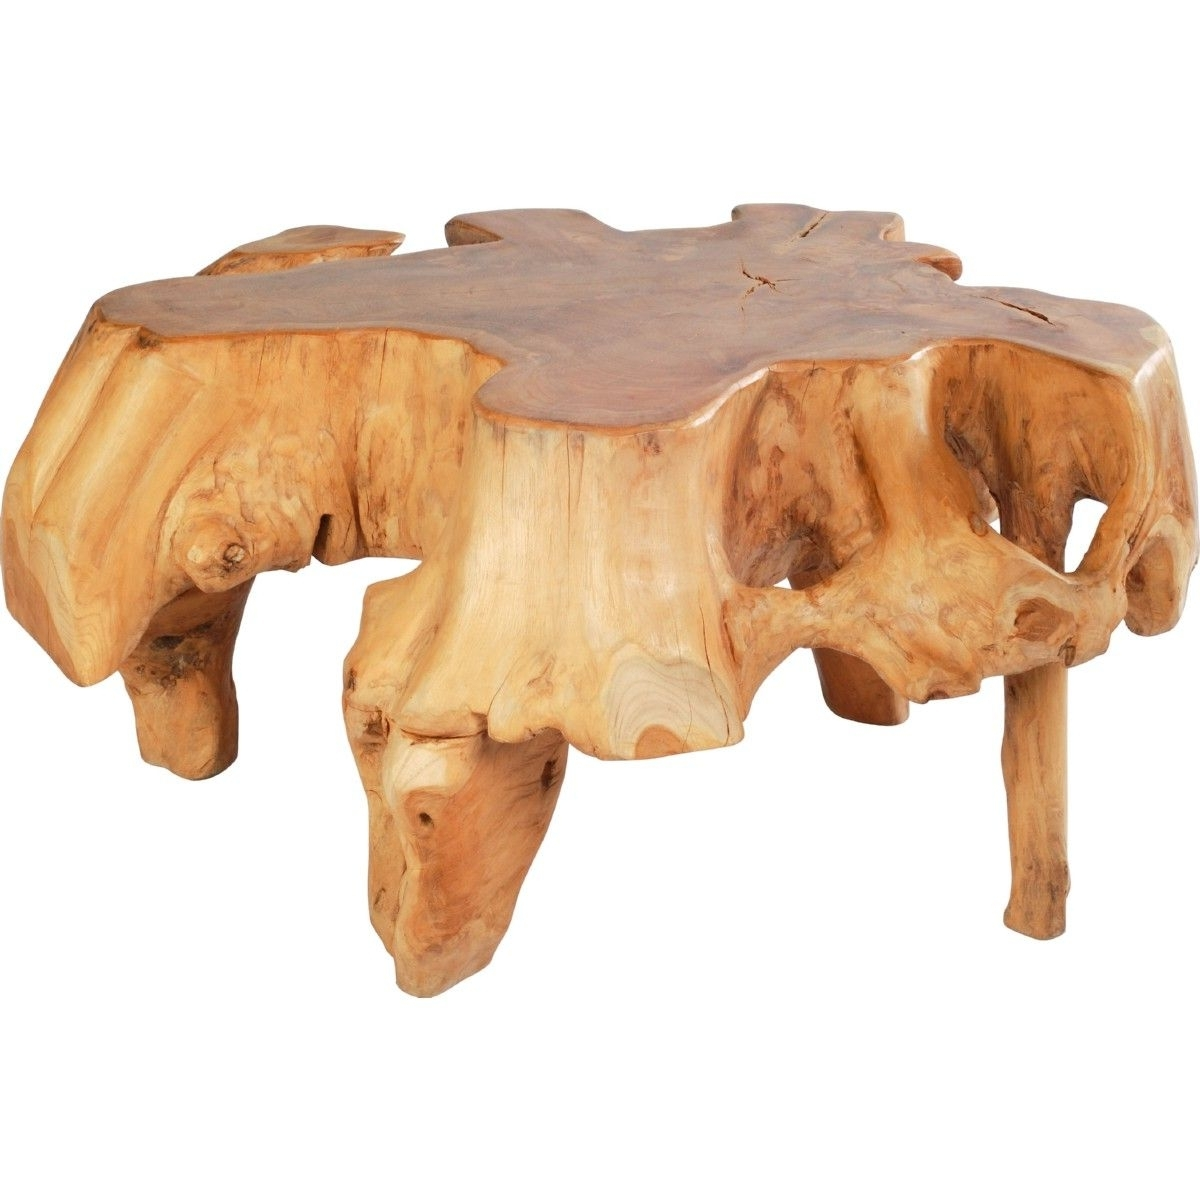 Zuo Modern Broll Coffee Table Organic Shape Teak Acrylic Gold Inside Widely Used Broll Coffee Tables (View 19 of 20)